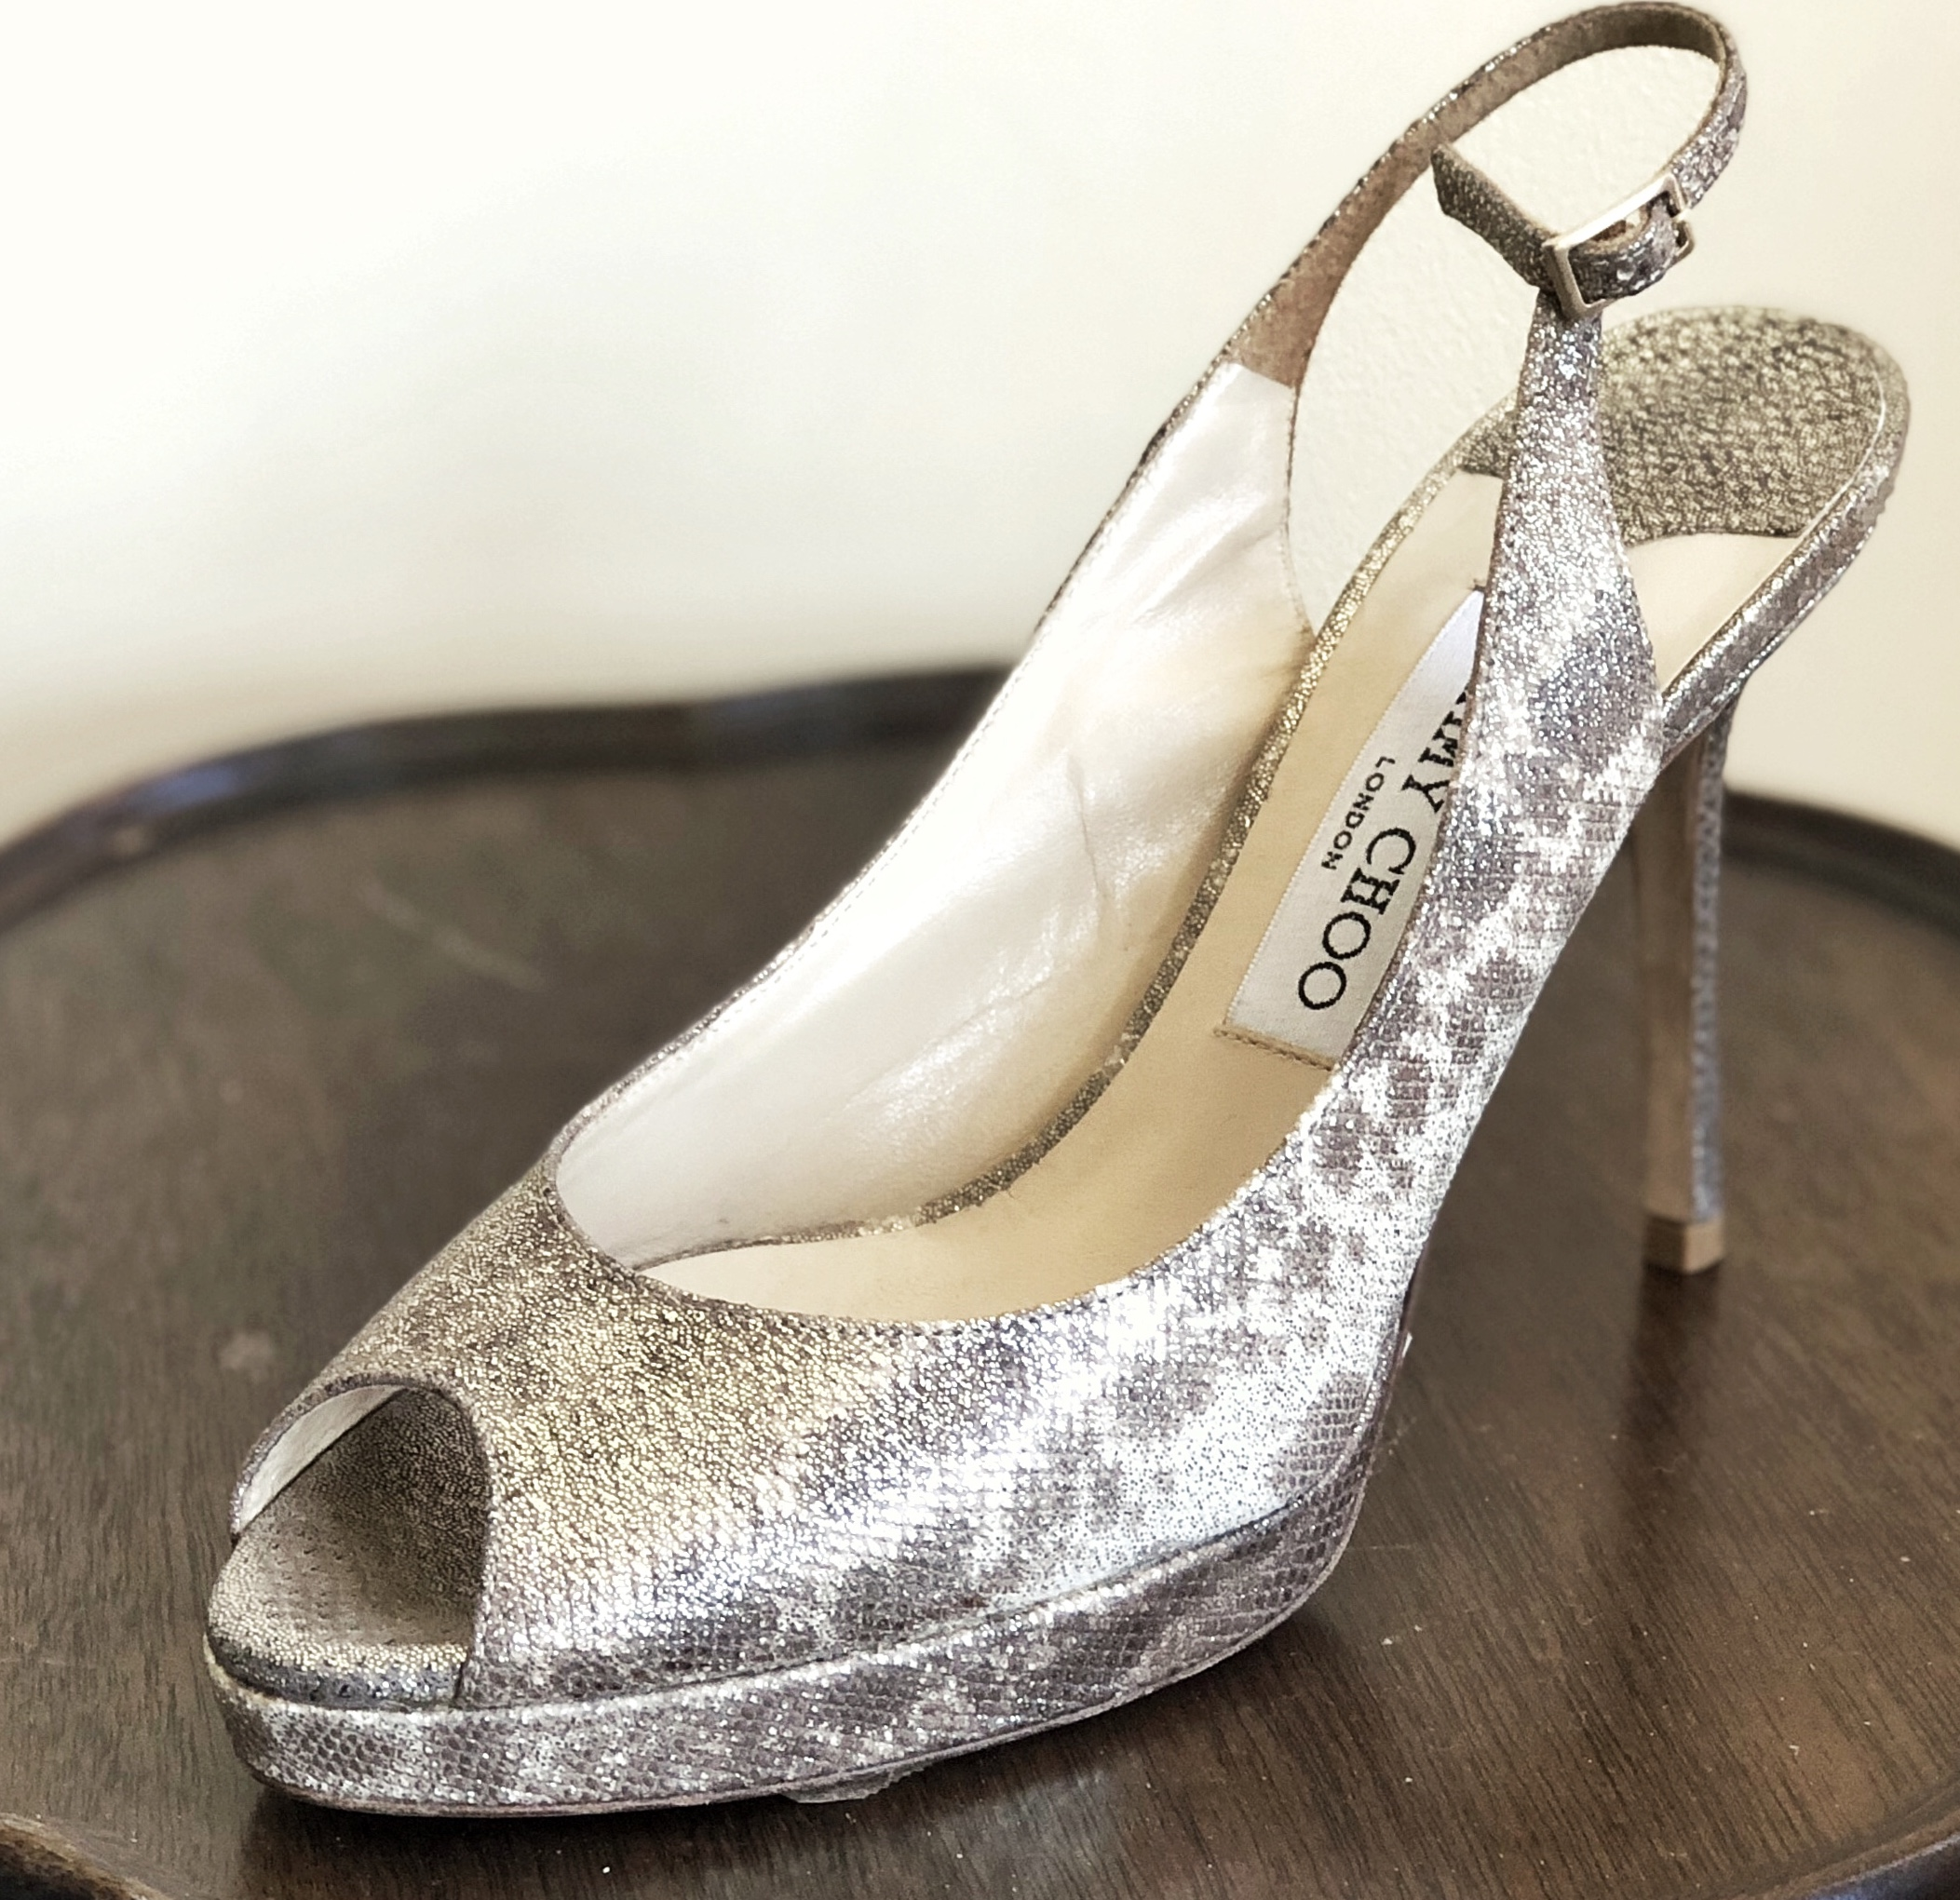 Gorgeous silver high heeled Jimmy Choo shoes. So comfortable and stylish - plus an easy and affordable way to have a designer piece in your wardrobe!